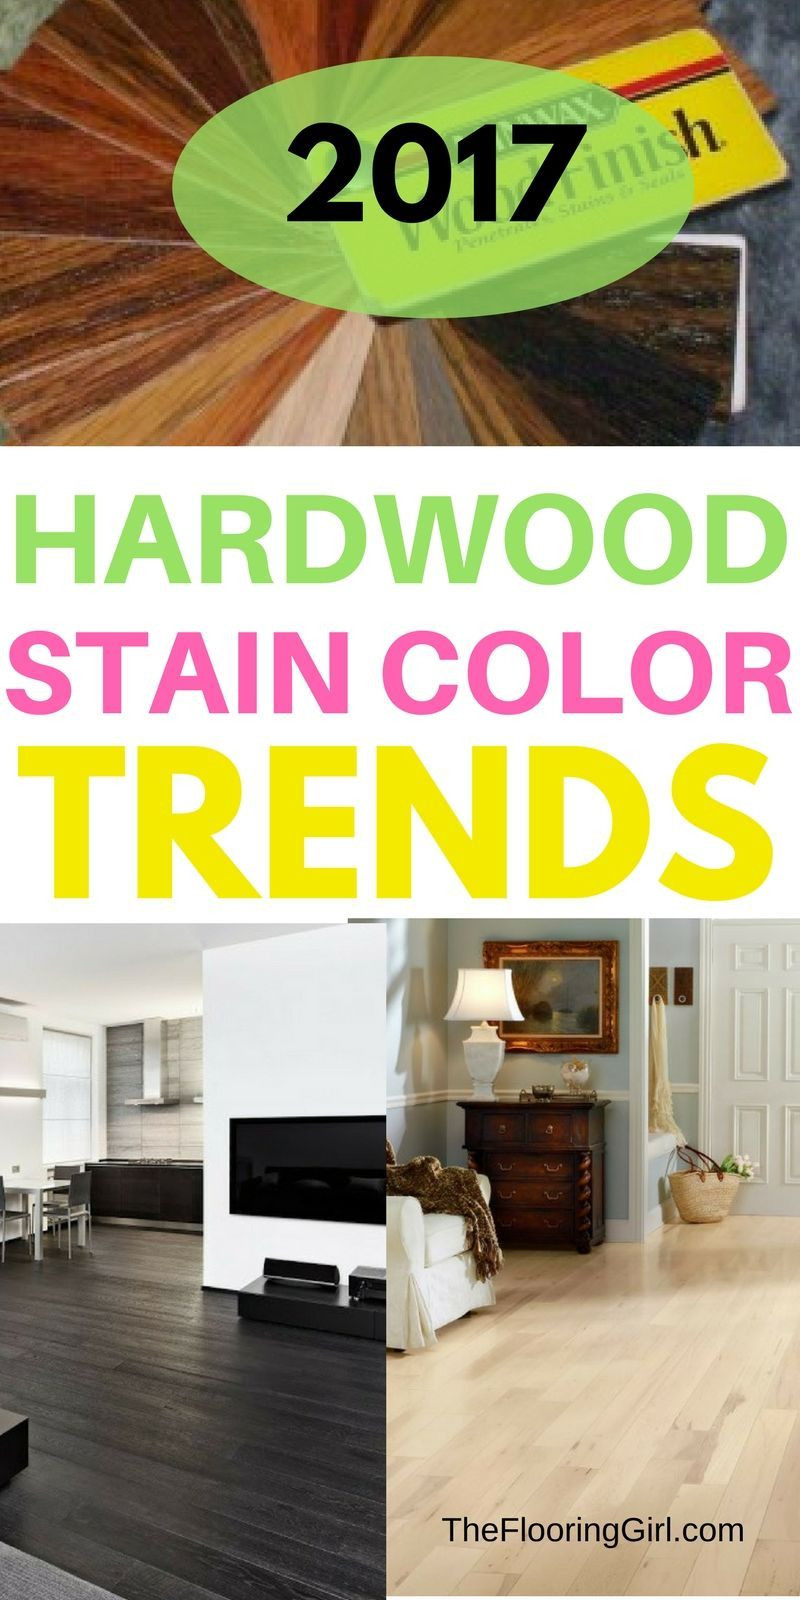 Hardwood Floor Refinishing Richmond Of 40 Hardwood Flooring Pros and Cons Concept In Hardwood Flooring Stain Color Trends for 2017 Hardwood Colors that are In Style theflooringgirl